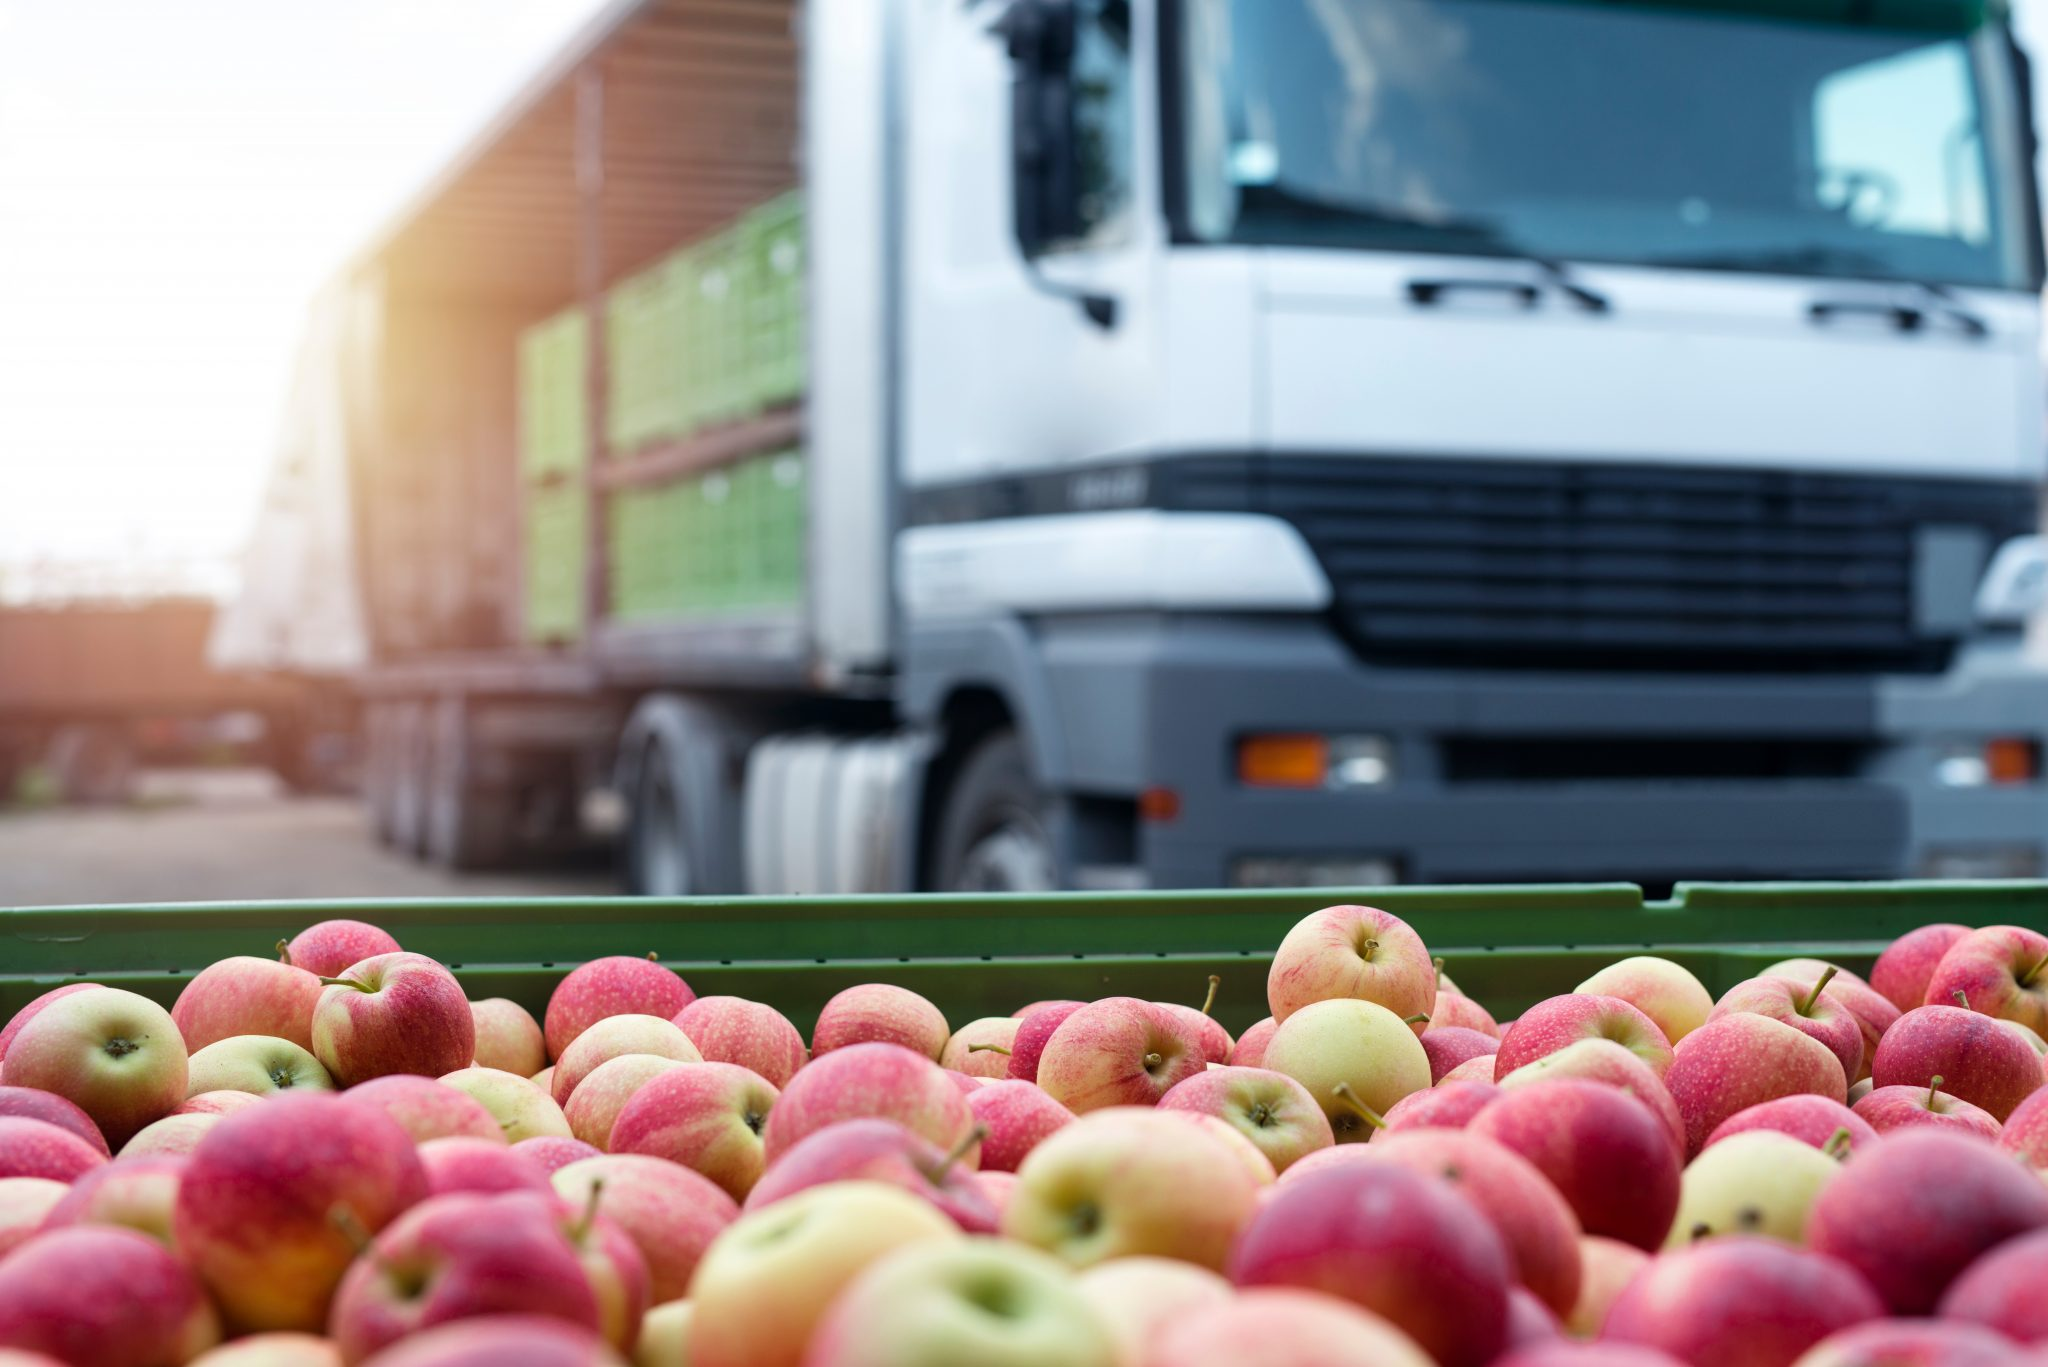 Produce in front of Truck